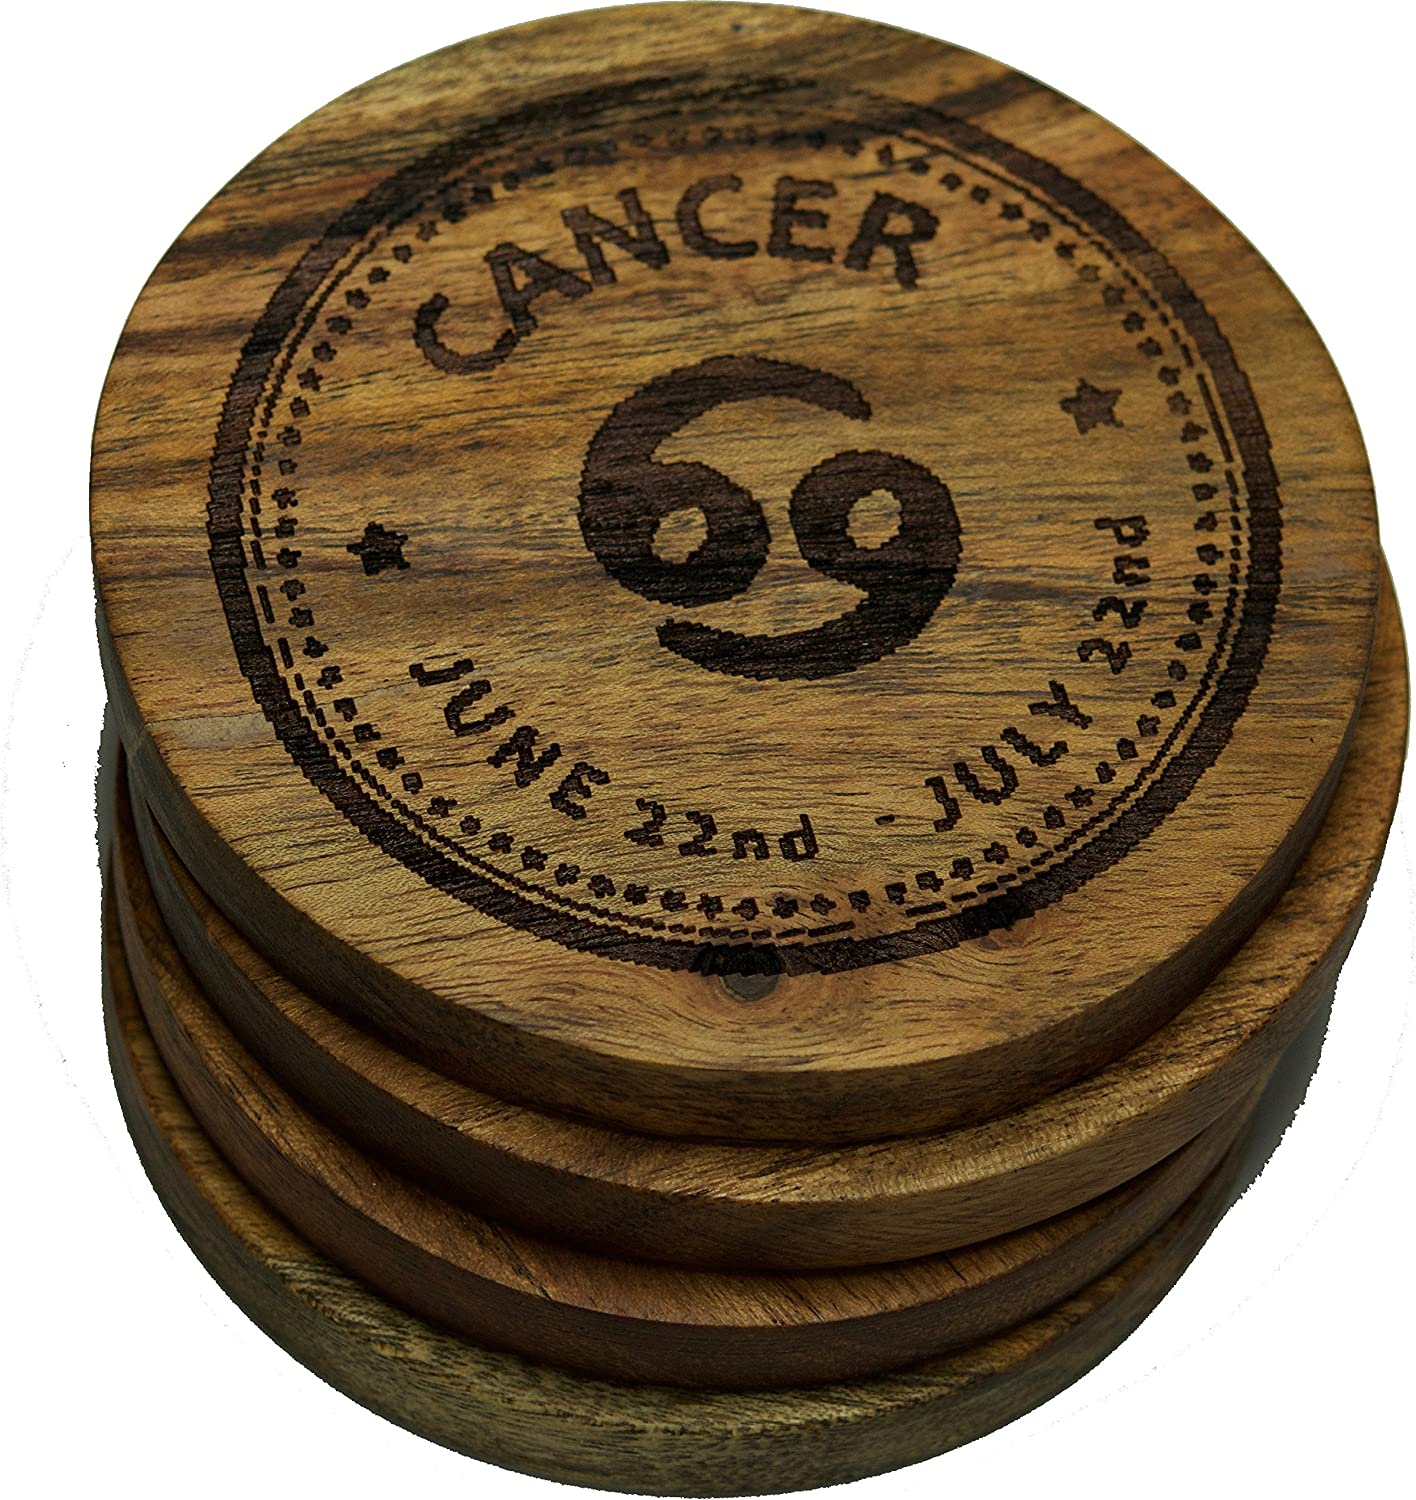 Custom Anniversary Gift Home Kitchen Decor Gemini Zodiac Sign Drink Coaster Set Engraved Astrological Signs Acacia Wooden Coasters